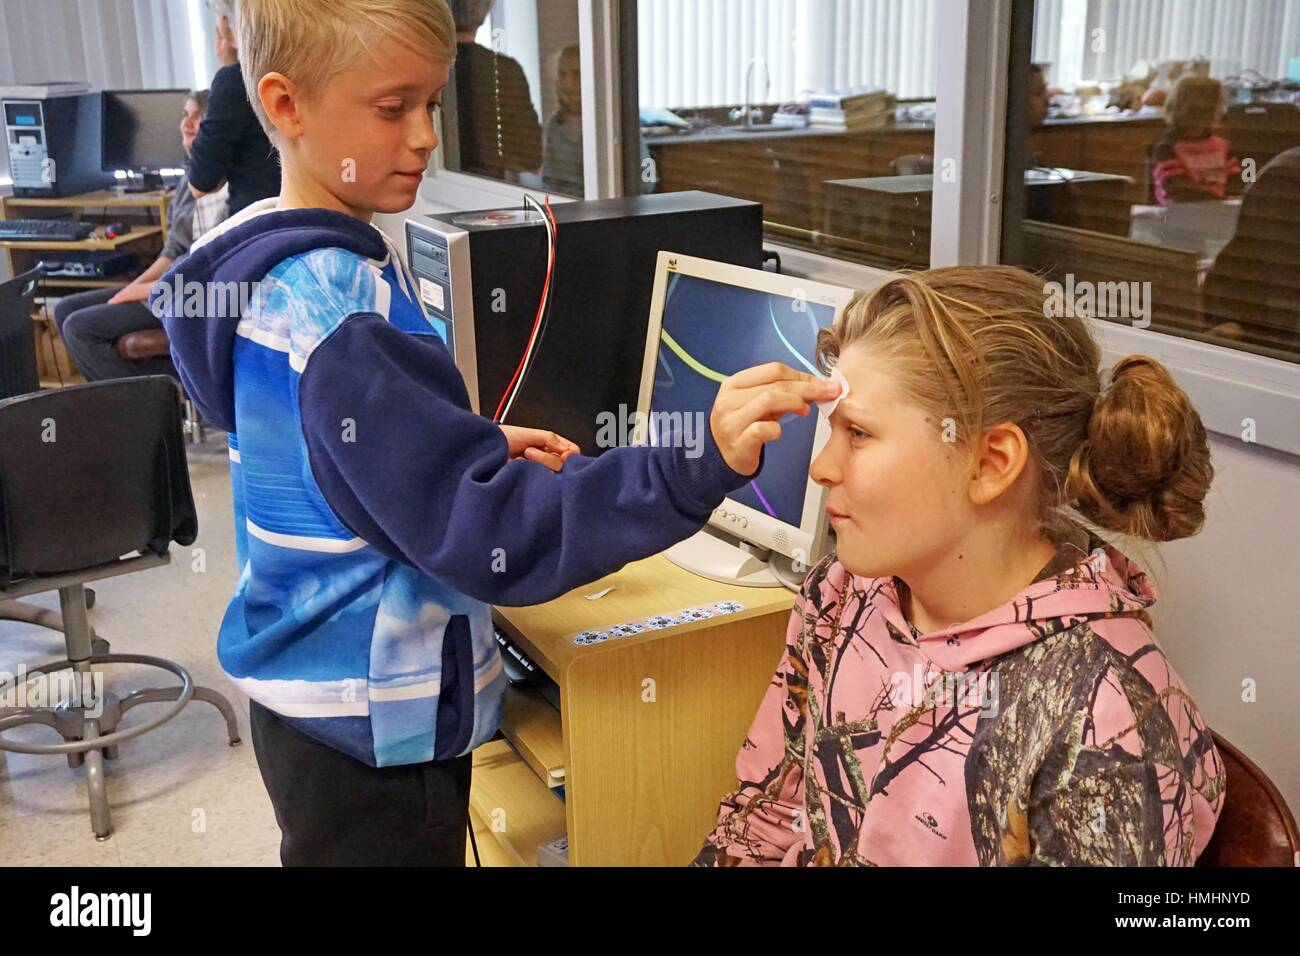 Middle Schoolers Doing Brain Wave Experiment, Houghton, New York, USA. - Stock Image